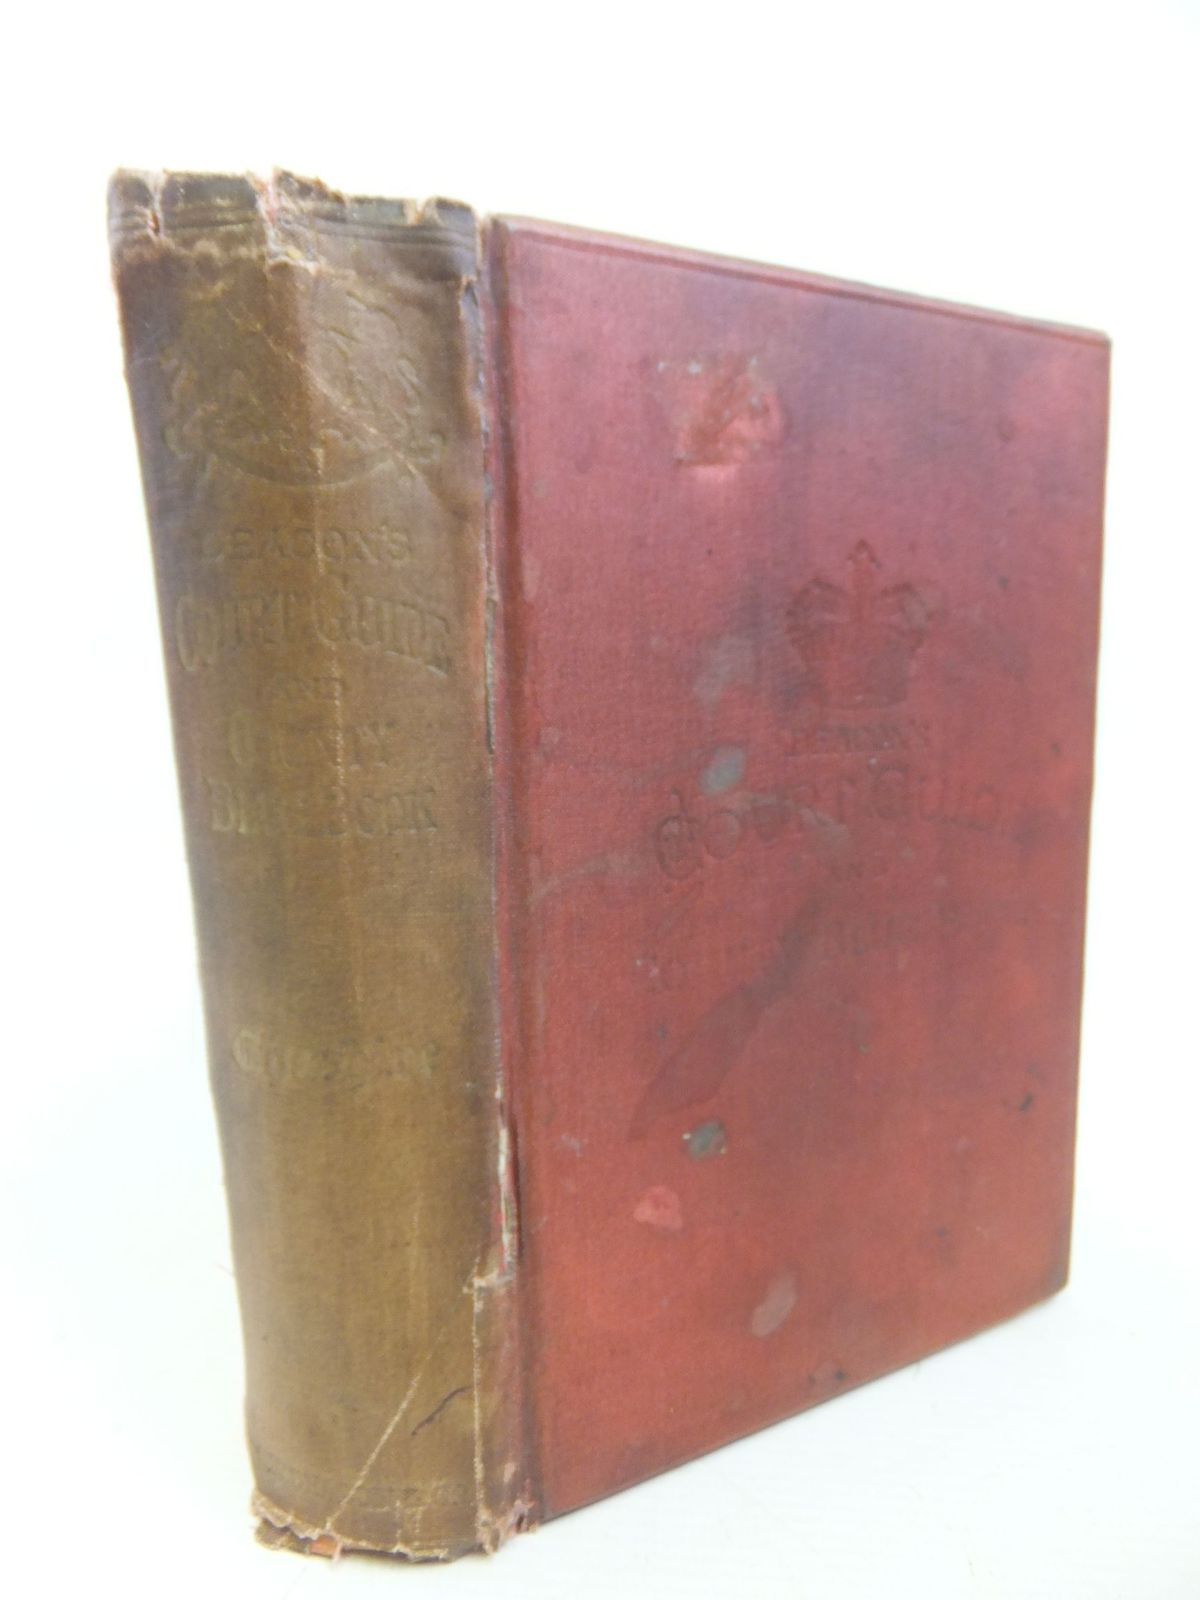 Photo of DEACON'S CHESHIRE COURT GUIDE AND COUNTY BLUE BOOK published by C.W. Deacon & Co. (STOCK CODE: 1713112)  for sale by Stella & Rose's Books